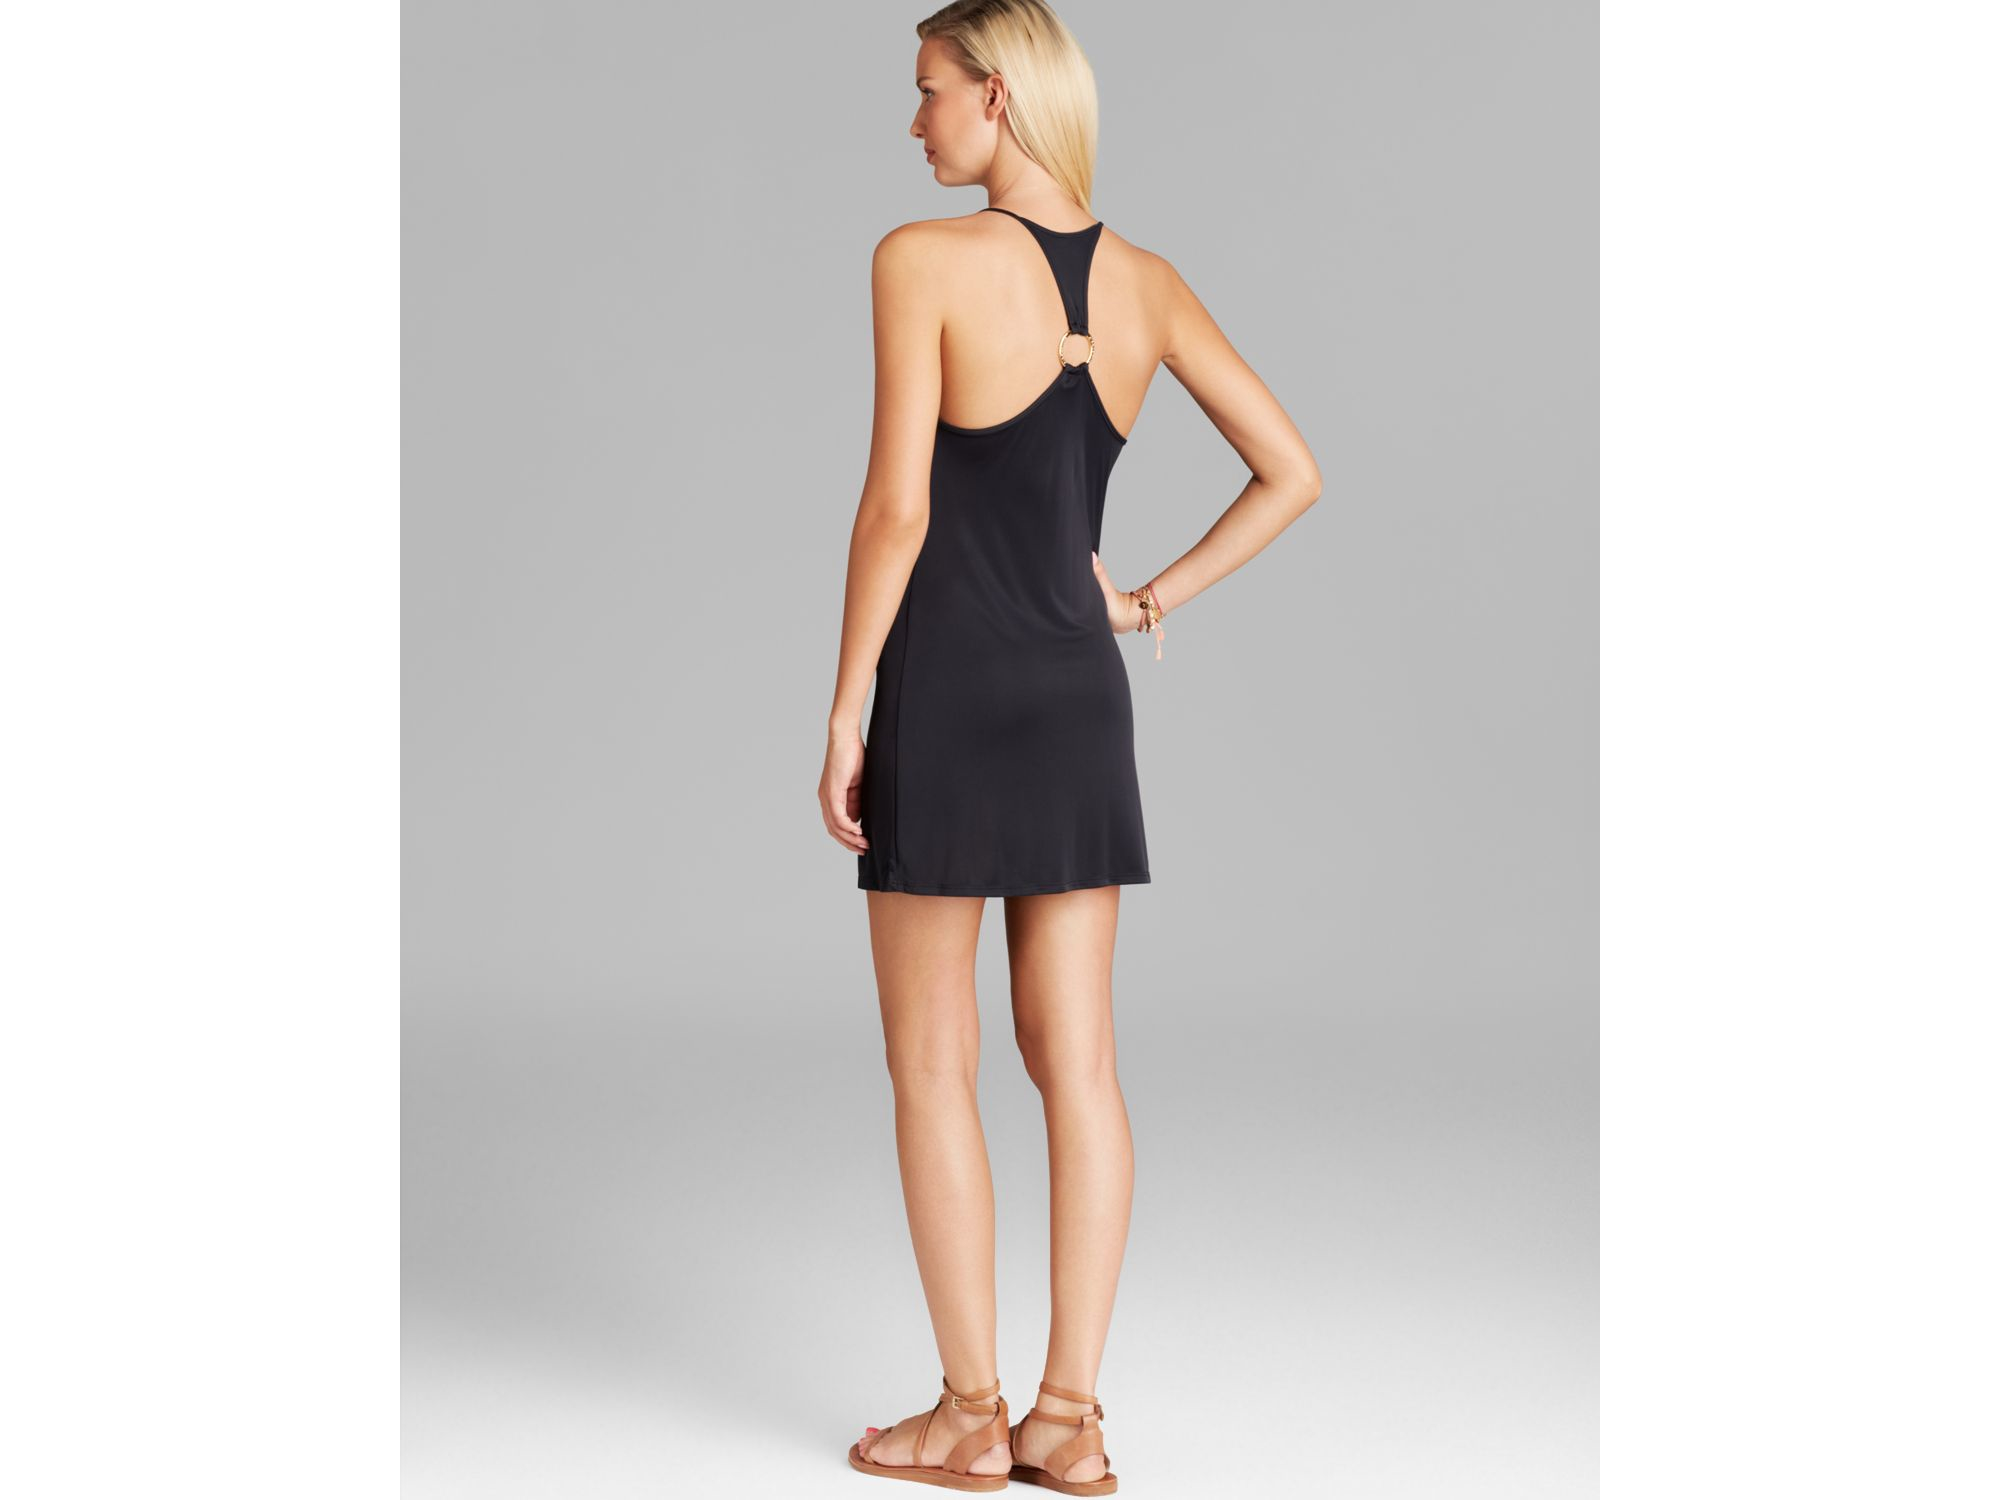 0f80273ad5d Lyst - Cia.Marítima Jersey Cowlneck Swim Cover Up Dress in Black